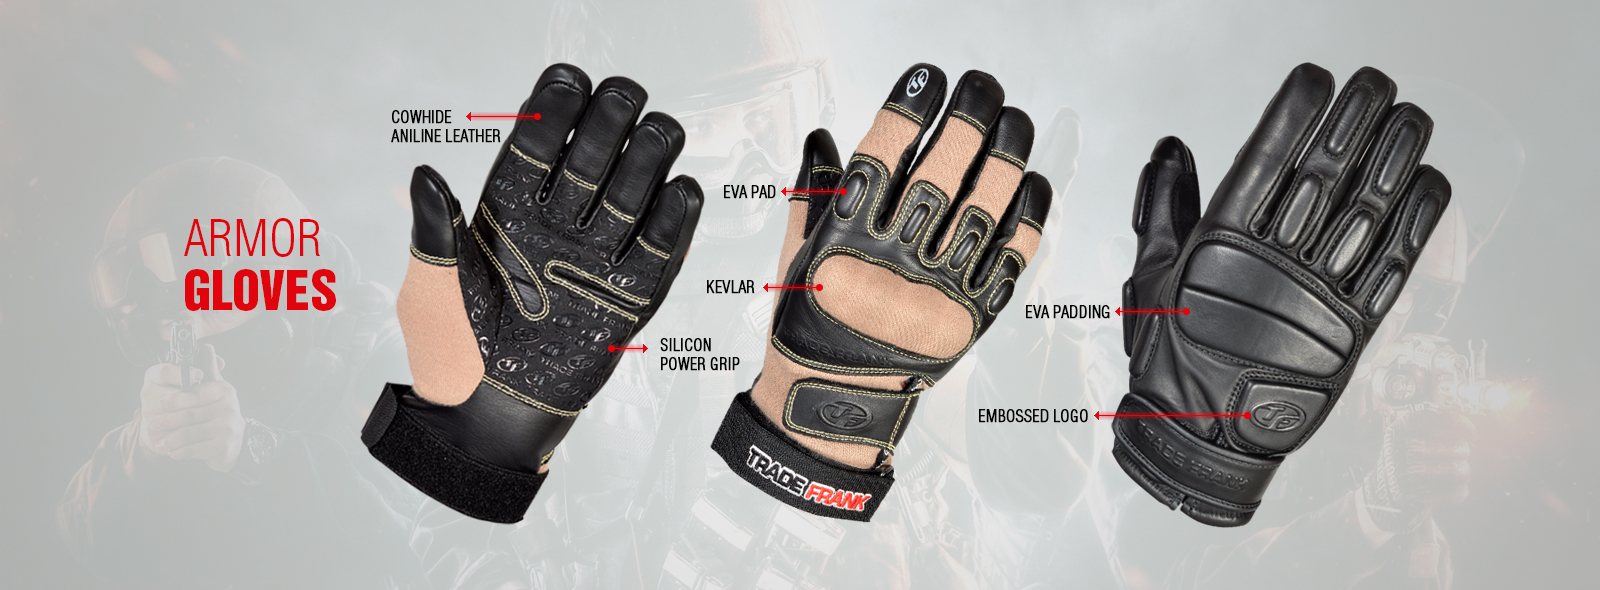 Armor Gloves-5